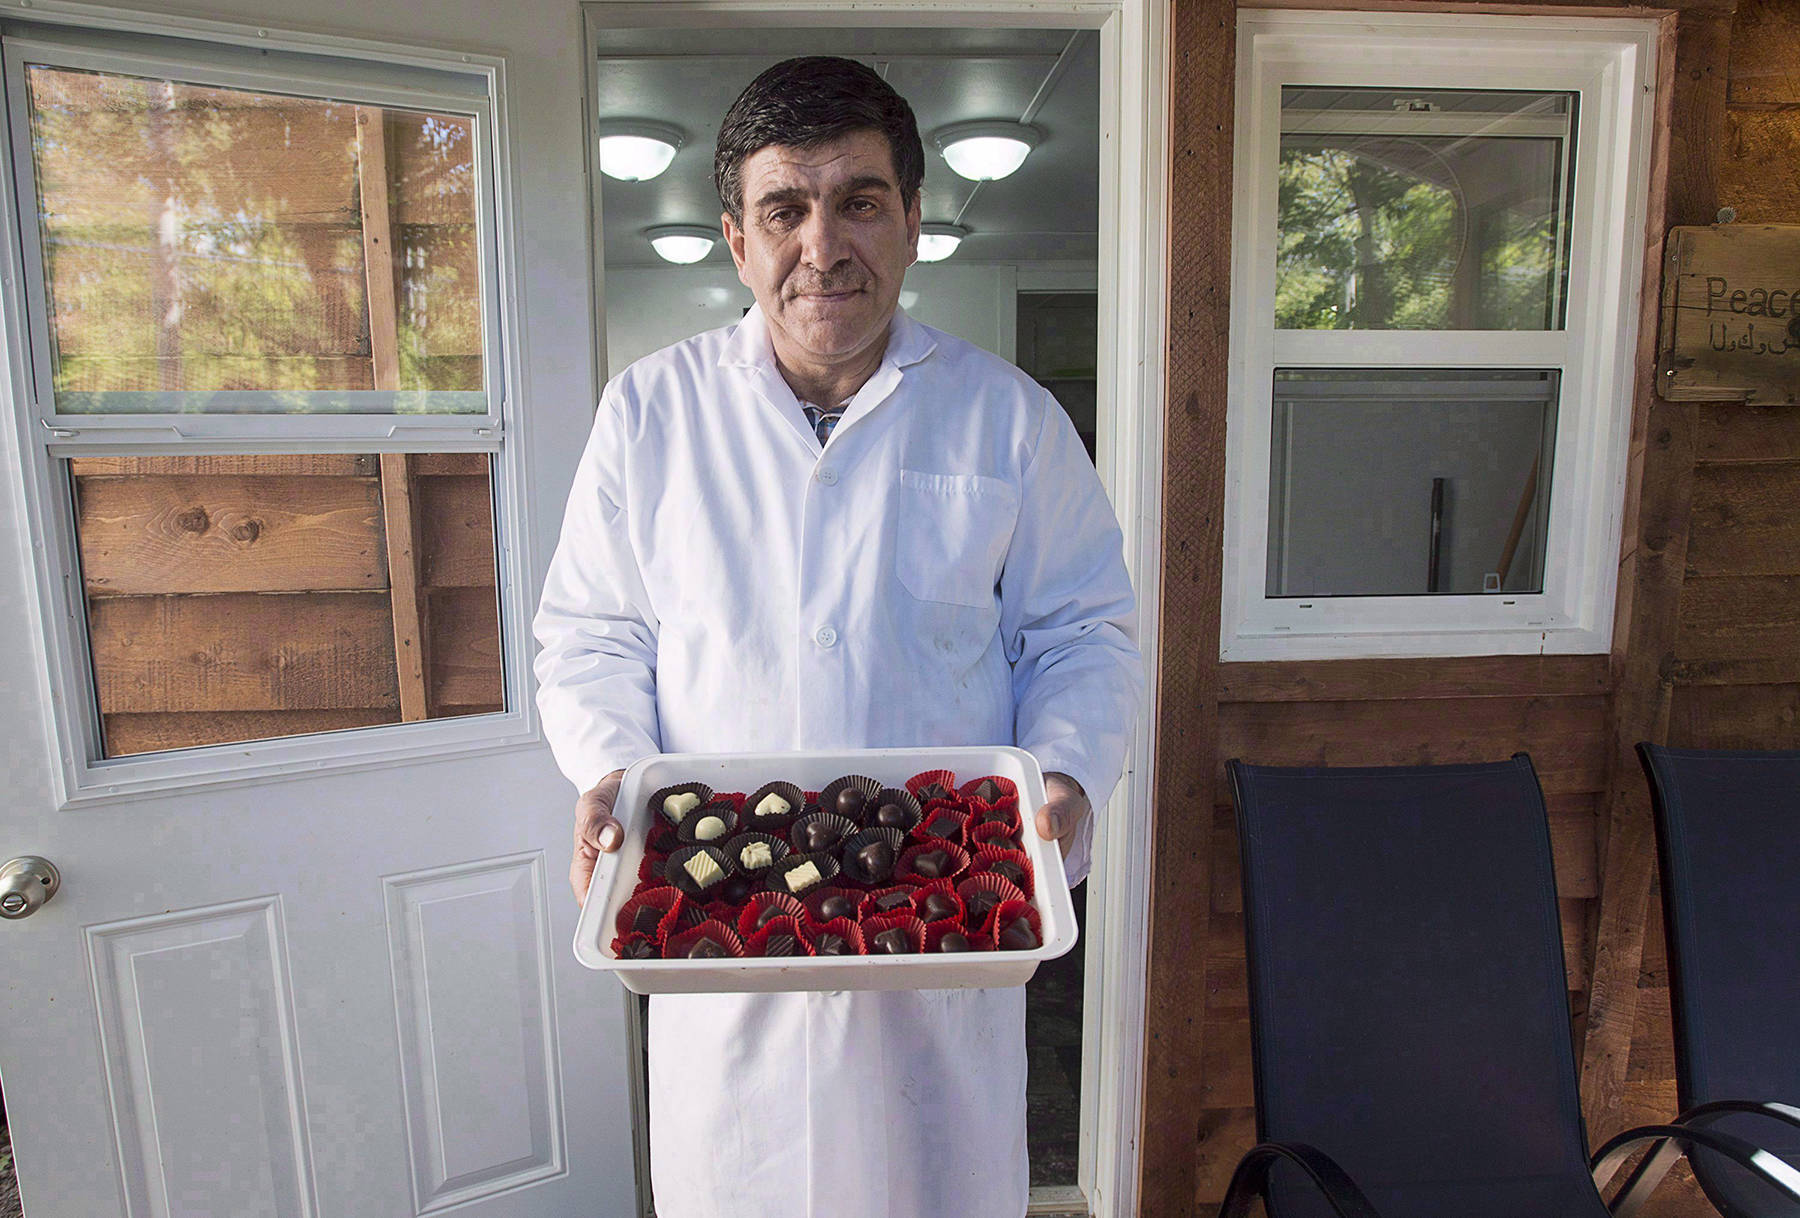 Assam Hadhad, a Syrian refugee who arrived in Canada last year, displays a tray of chocolates at his shop, Peace by Chocolate, in Antigonish, N.S. on Wednesday, Sept. 21, 2016. CEO Tareq Hadhad has plans to hiring more refugees over the next three years. (Andrew Vaughan/The Canadian Press)